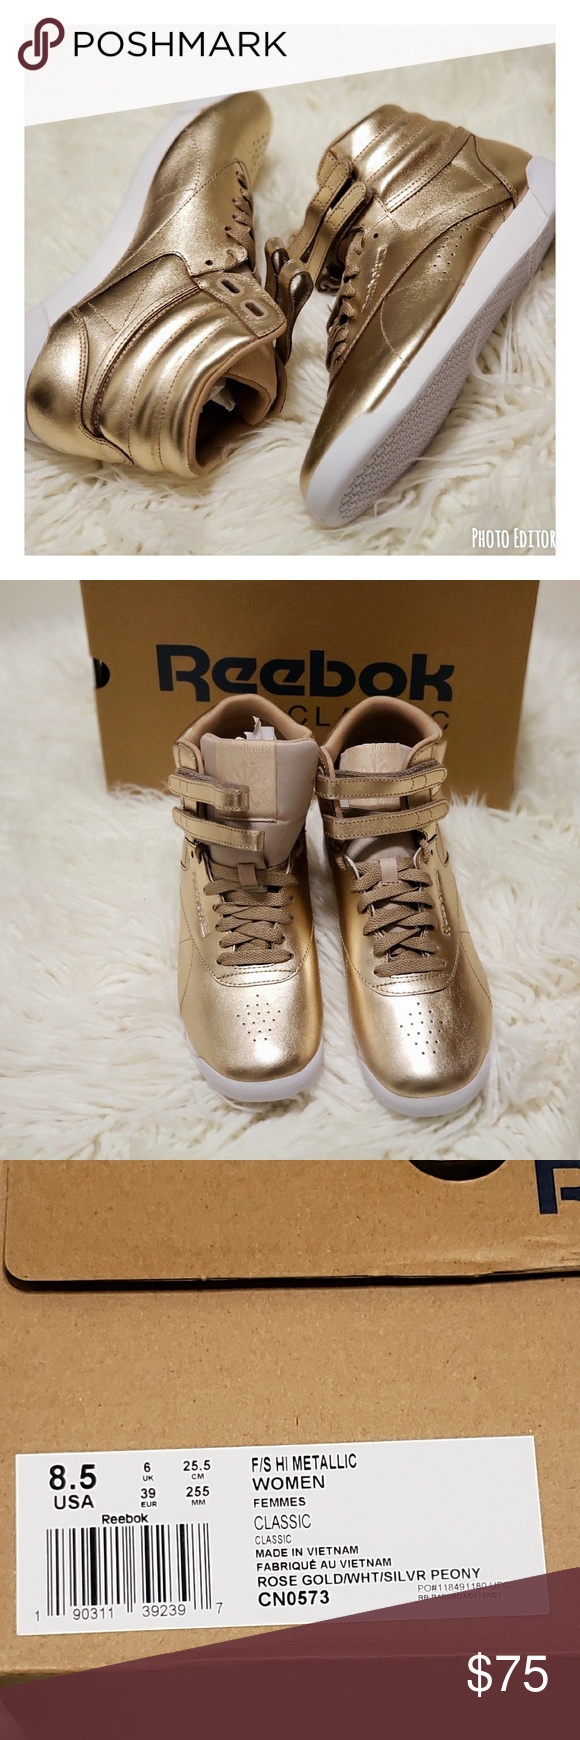 f2cbab06038 Reebok Freestyle Hi Metallic (CN0573) Never worn!!! Available in a  brilliant gold colorway